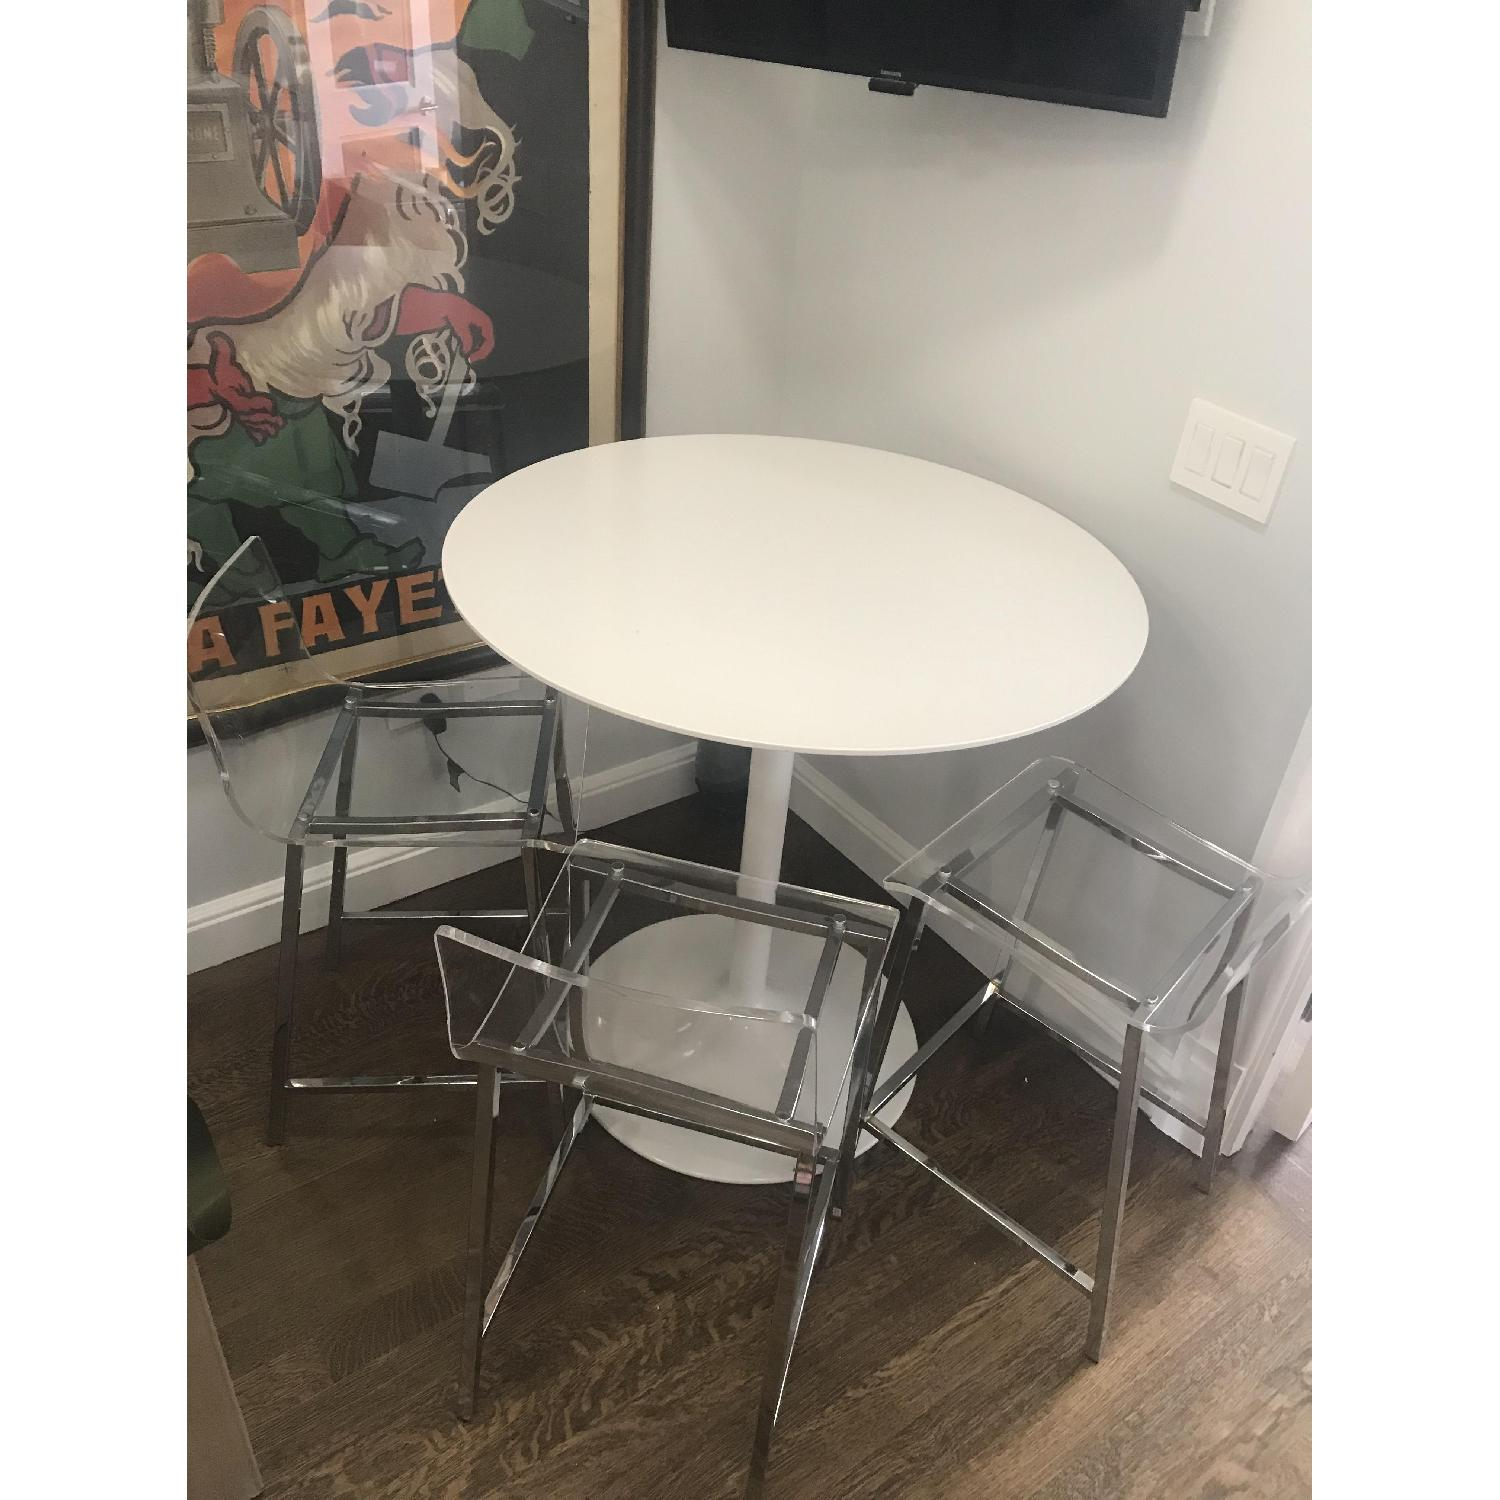 White Round Bar Table w/ 3 Clear Chairs - image-2